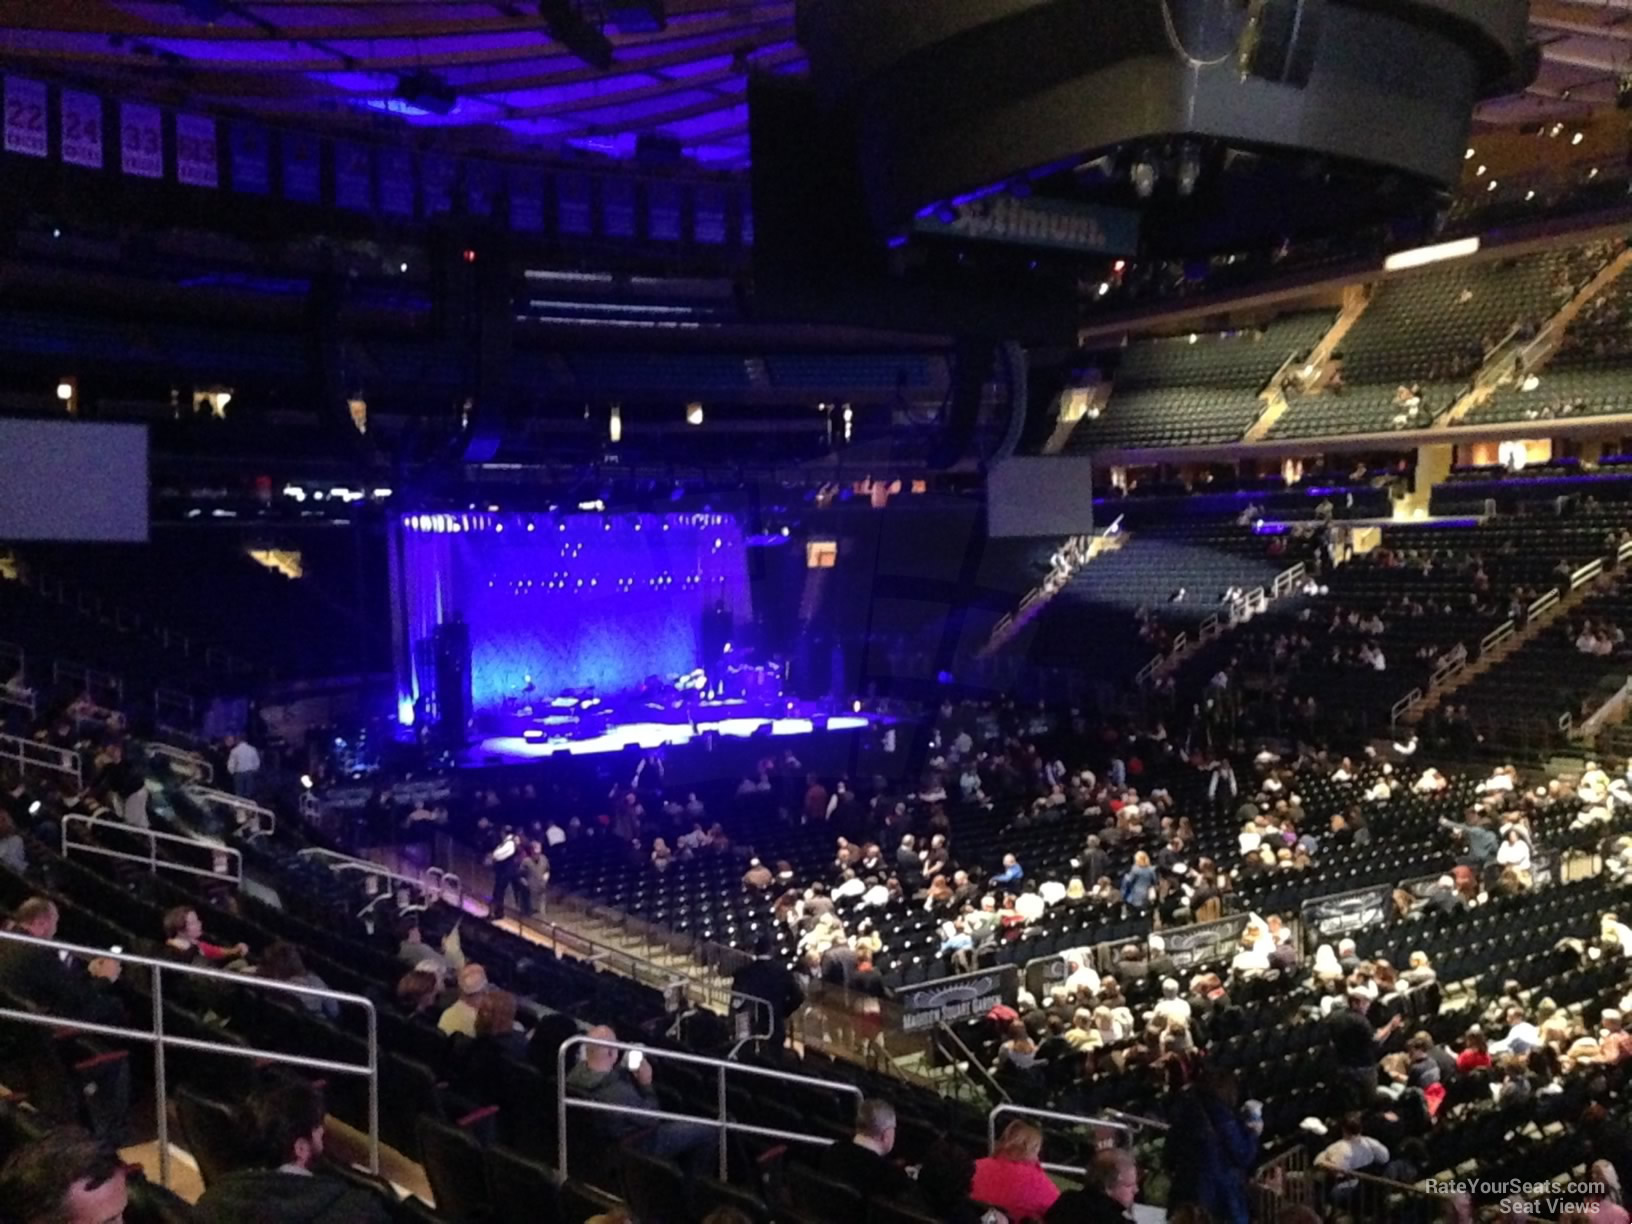 Madison Square Garden Section 119 Concert Seating